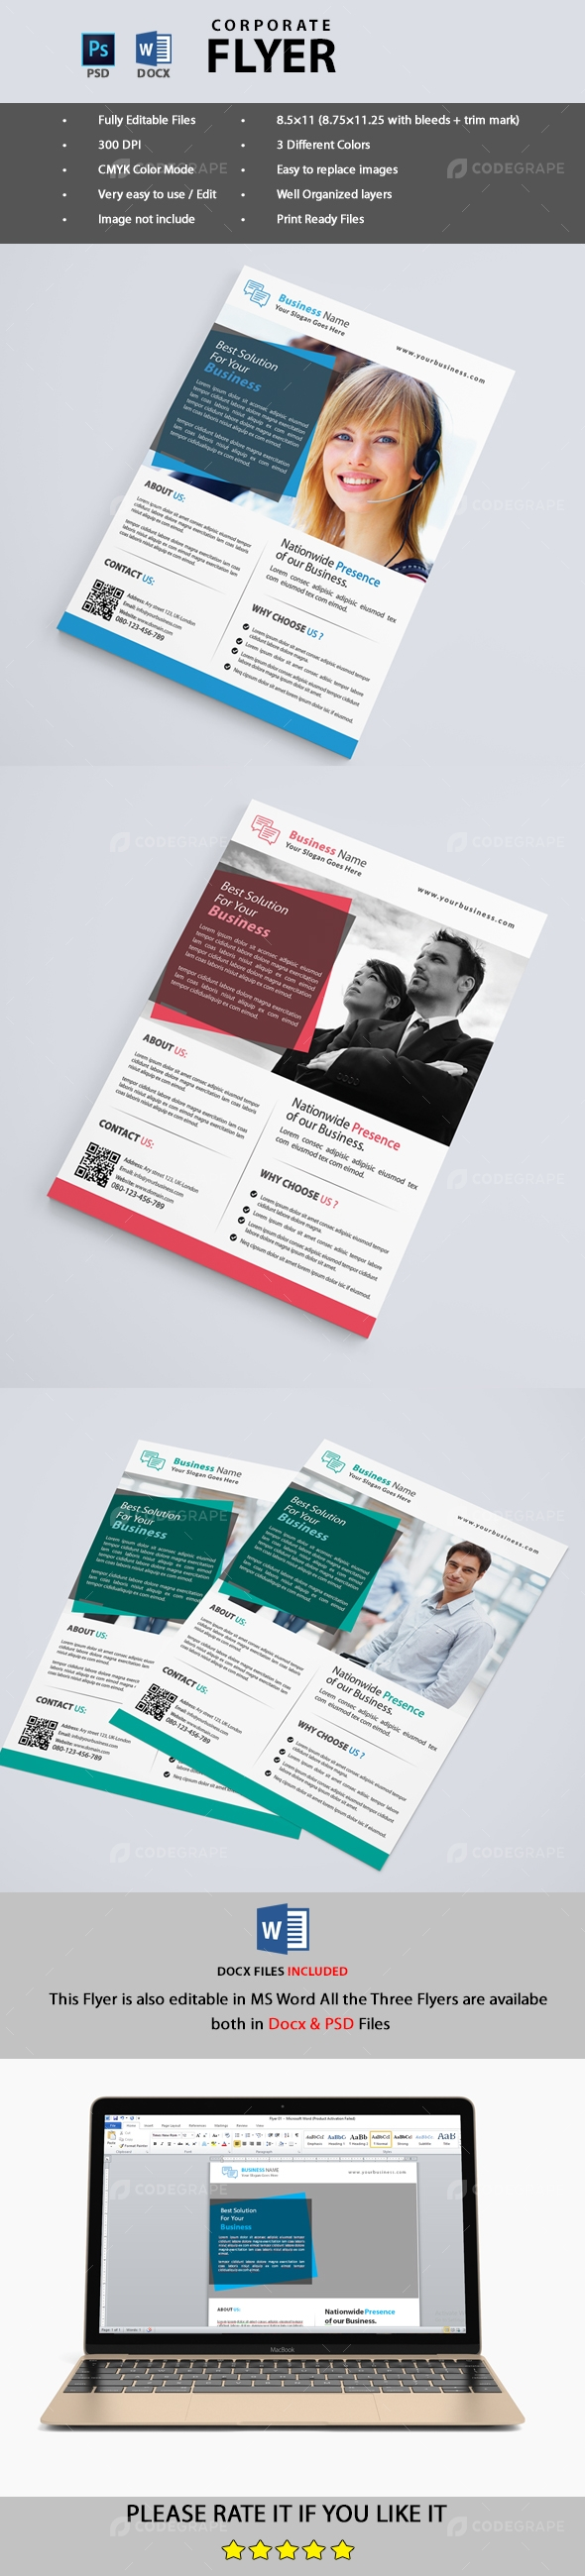 Corporate Flyer (PSD & MS Word)